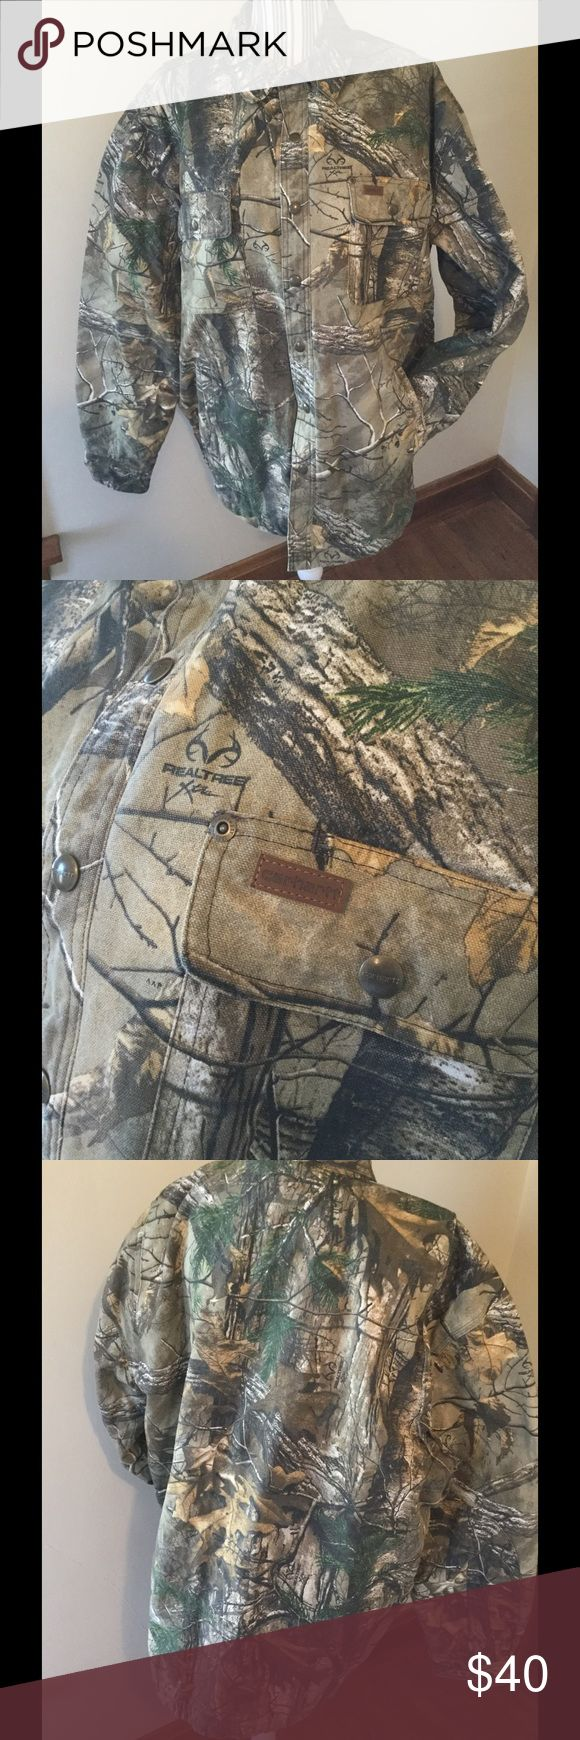 Carhartt Men's quilted Realtree shirt Like new condition, Realtree quilted with hunter orange interior. WEXFORD CAMO SHIRT JAC MEN'S ORIGINAL FIT, COTTON CANVAS, REALTREE XTRA® CAMO, QUILTED LINING  carhartt Jackets & Coats Lightweight & Shirt Jackets